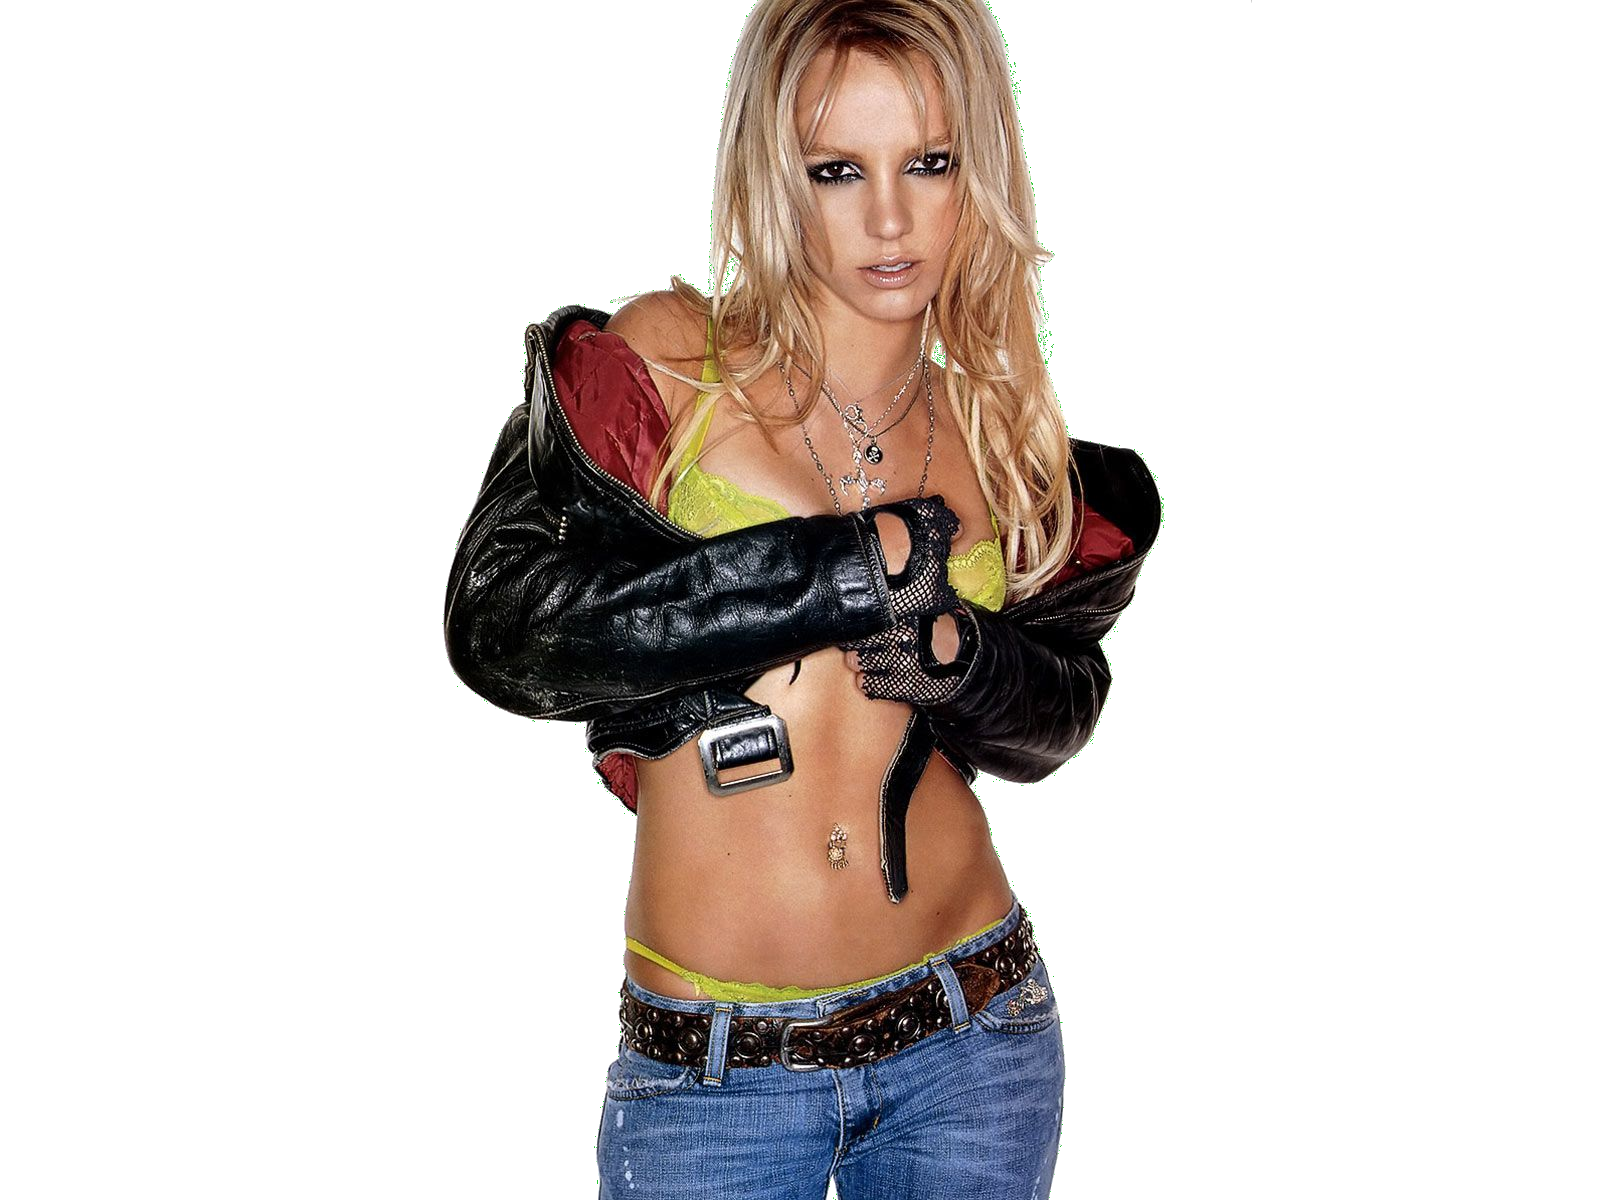 HD Wallpaper and background photos of Britney for fans of Britney Spears  images.